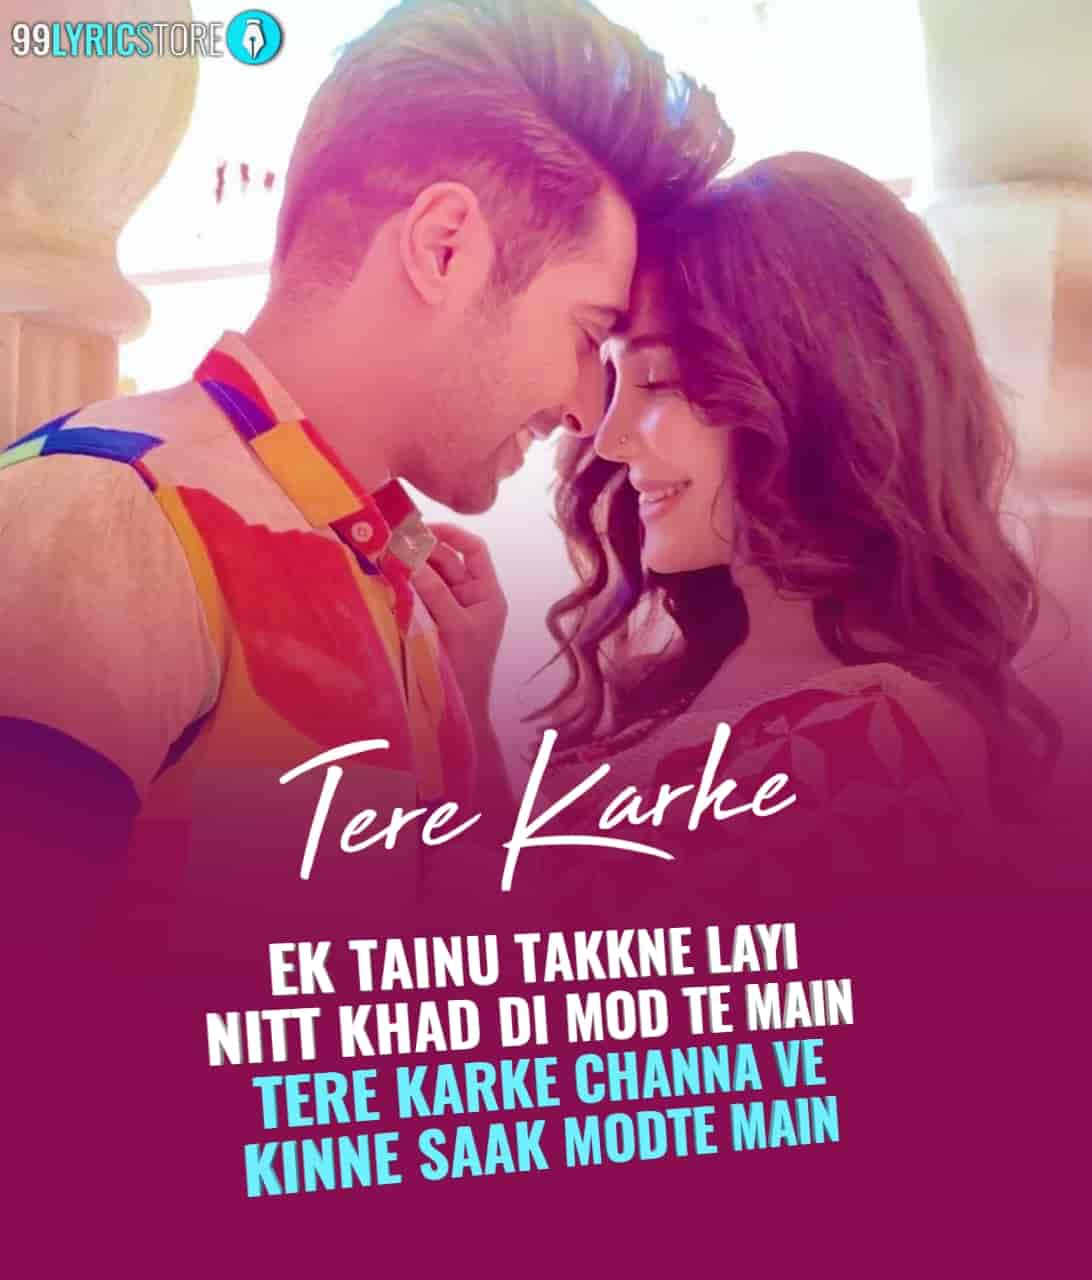 Tere Karke Song Image By Guri